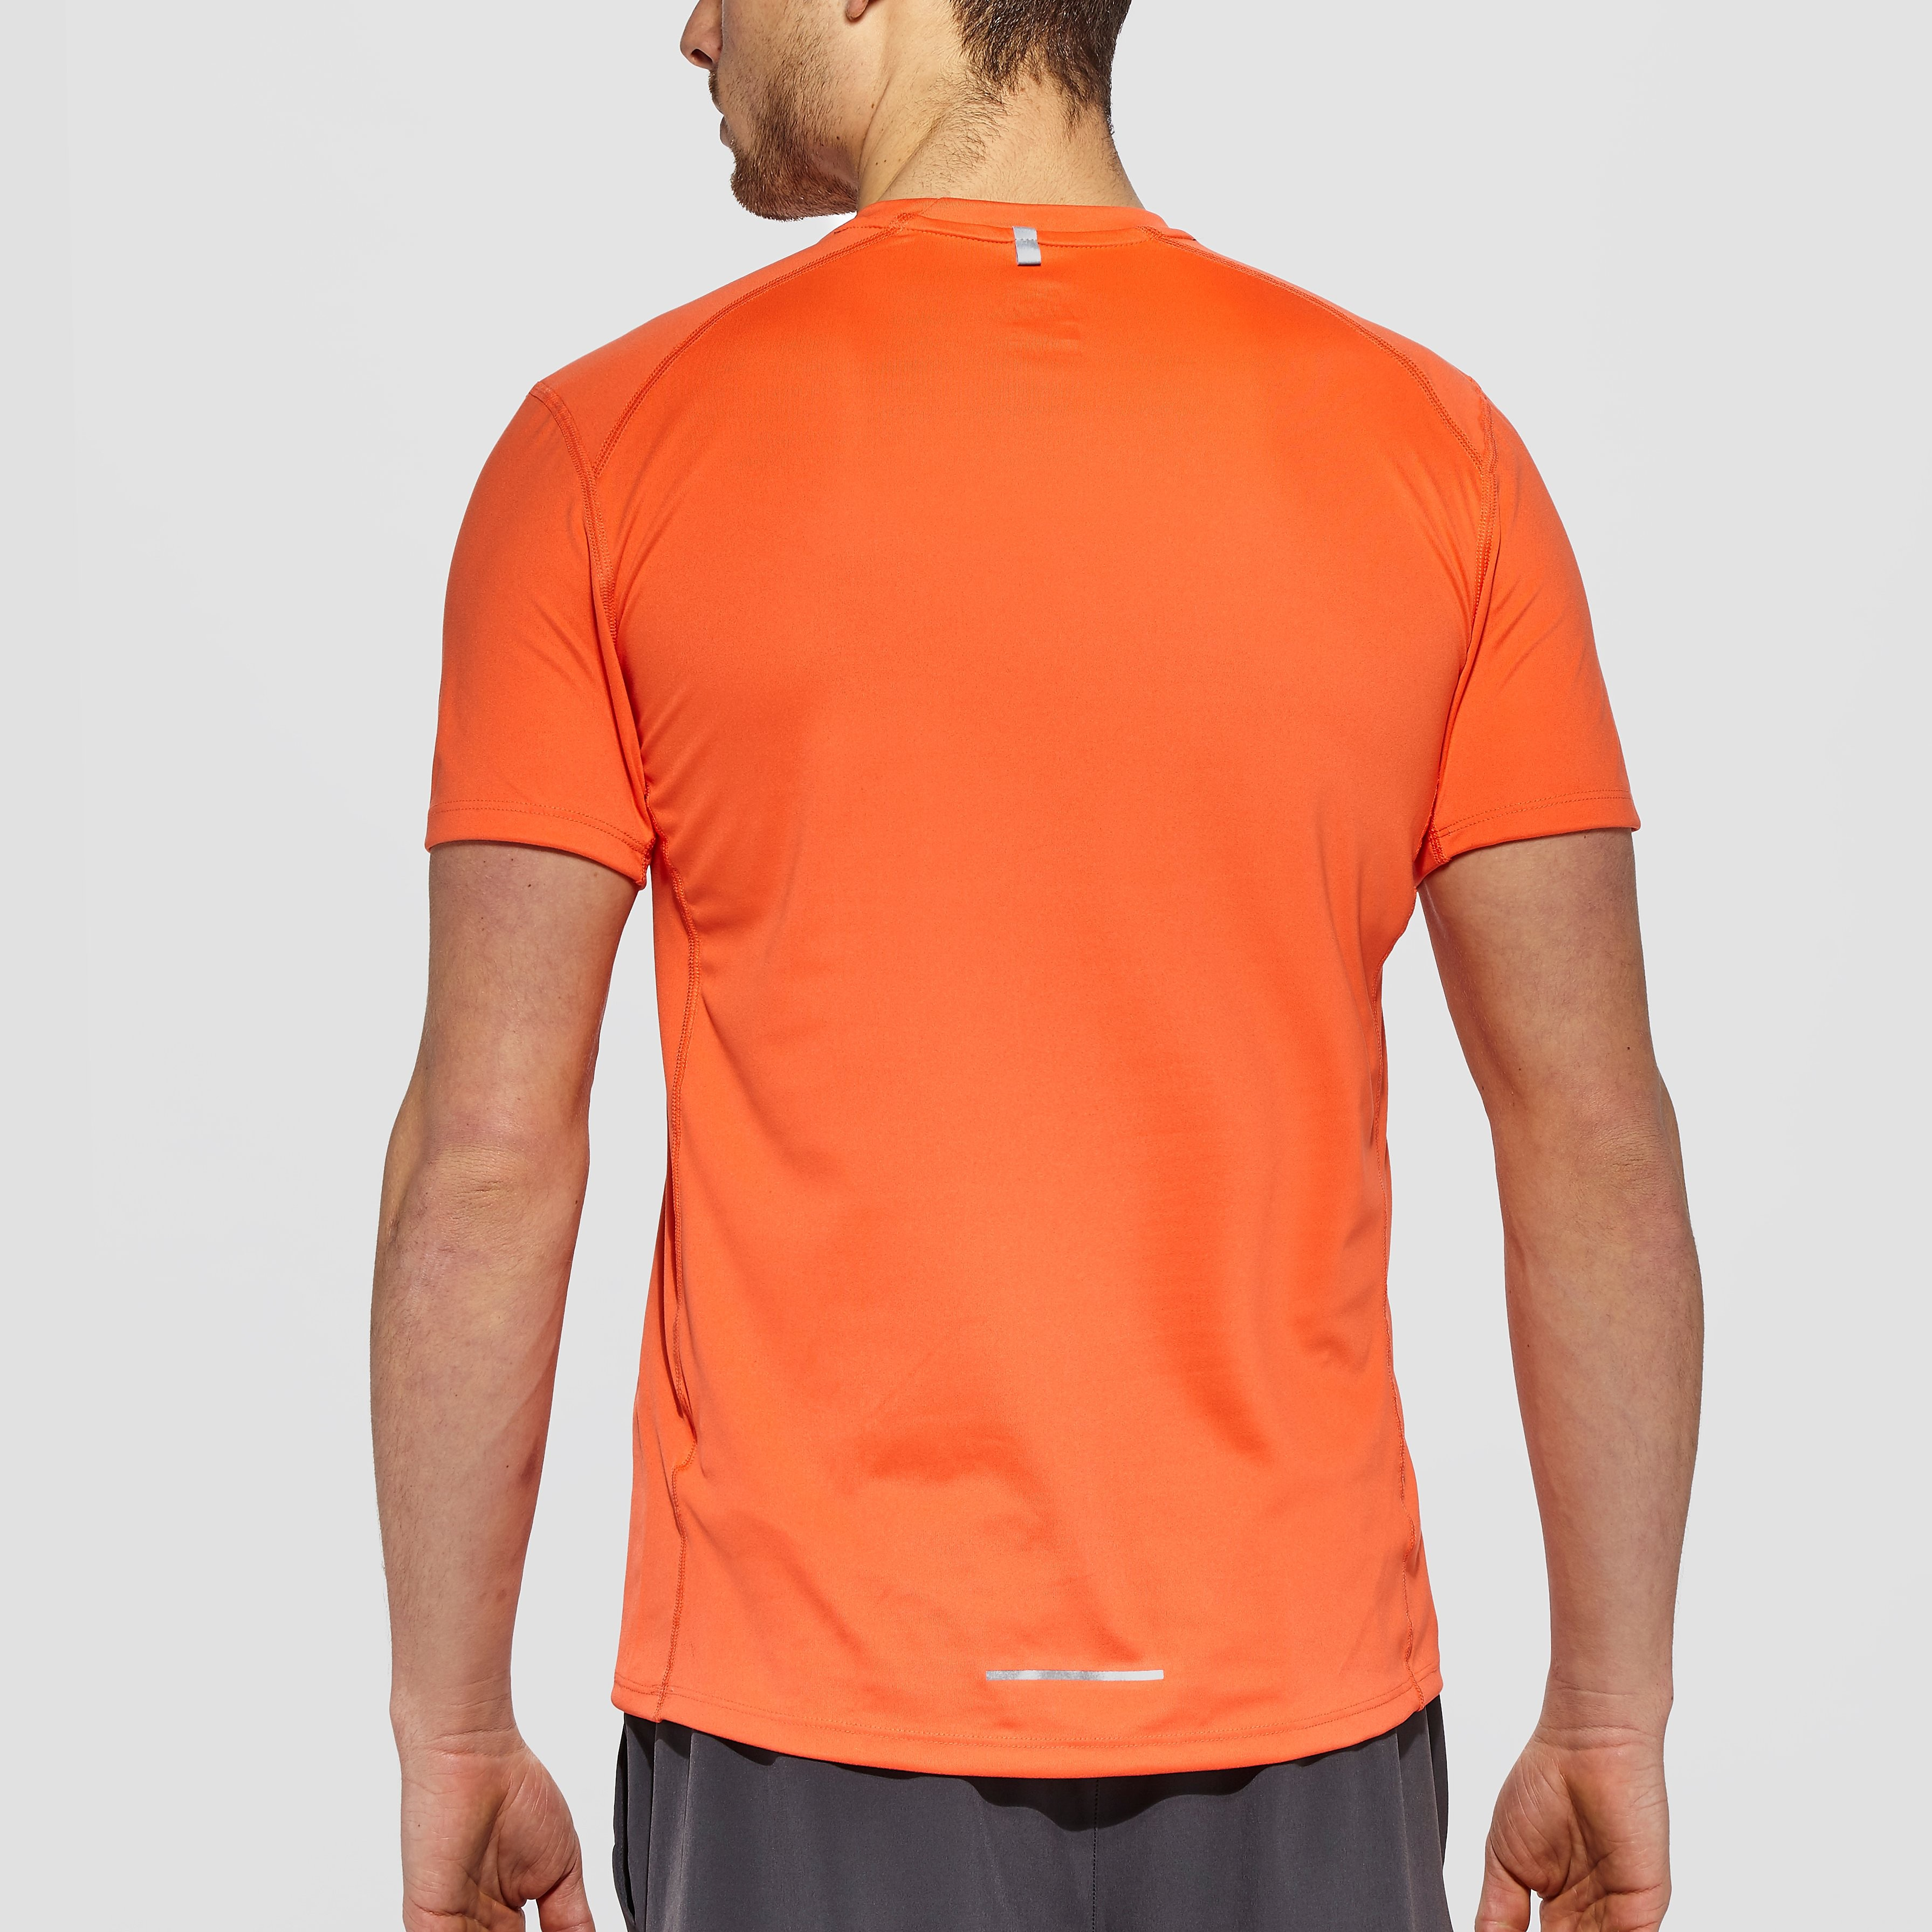 Nike Dry Miler Short-Sleeve Men's Top